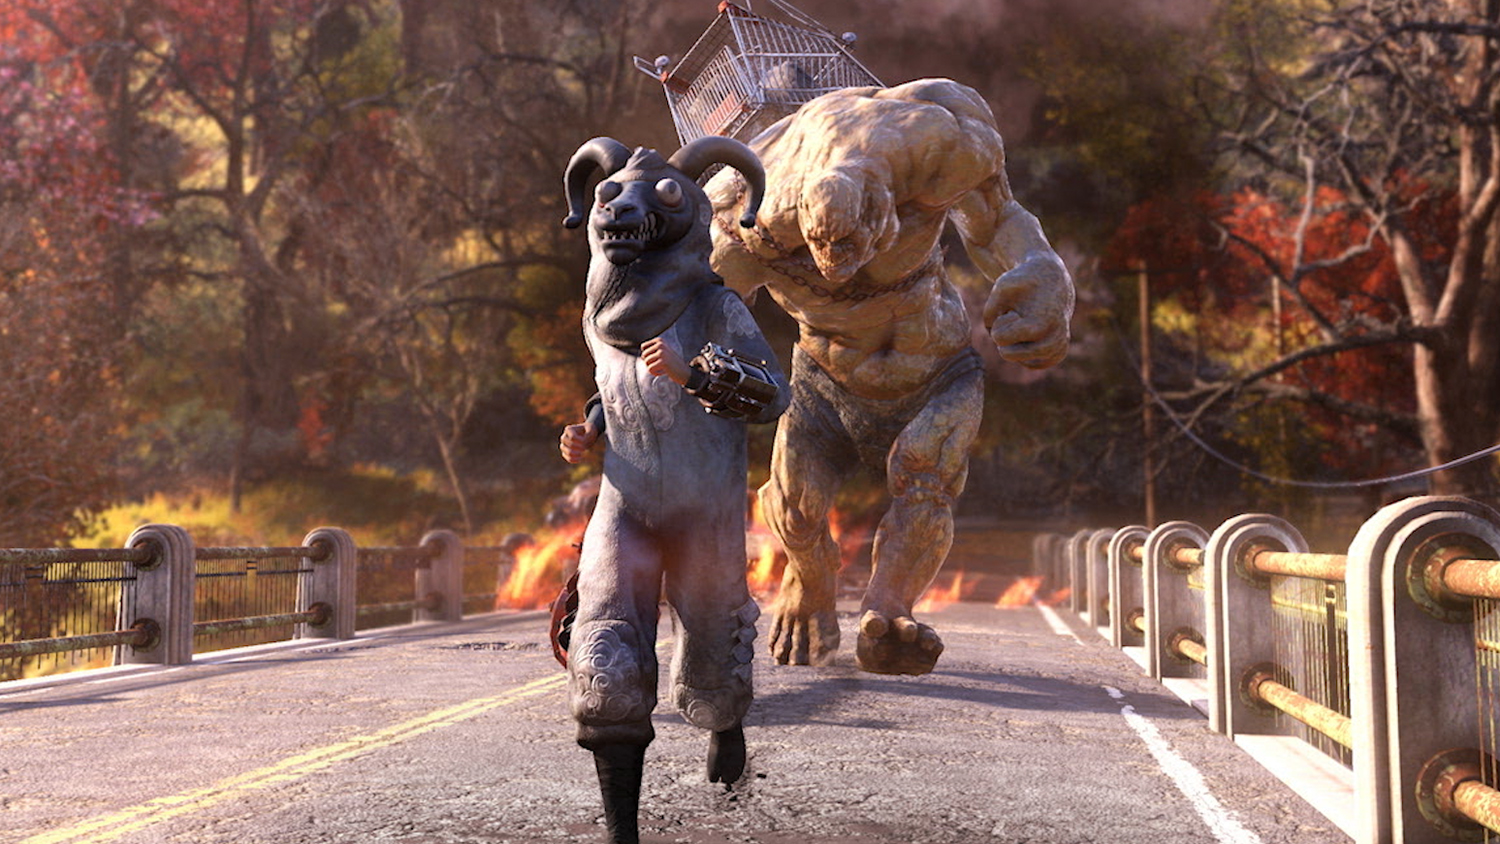 The extensive update to Wild Appalachia by Fallout 76 has been released